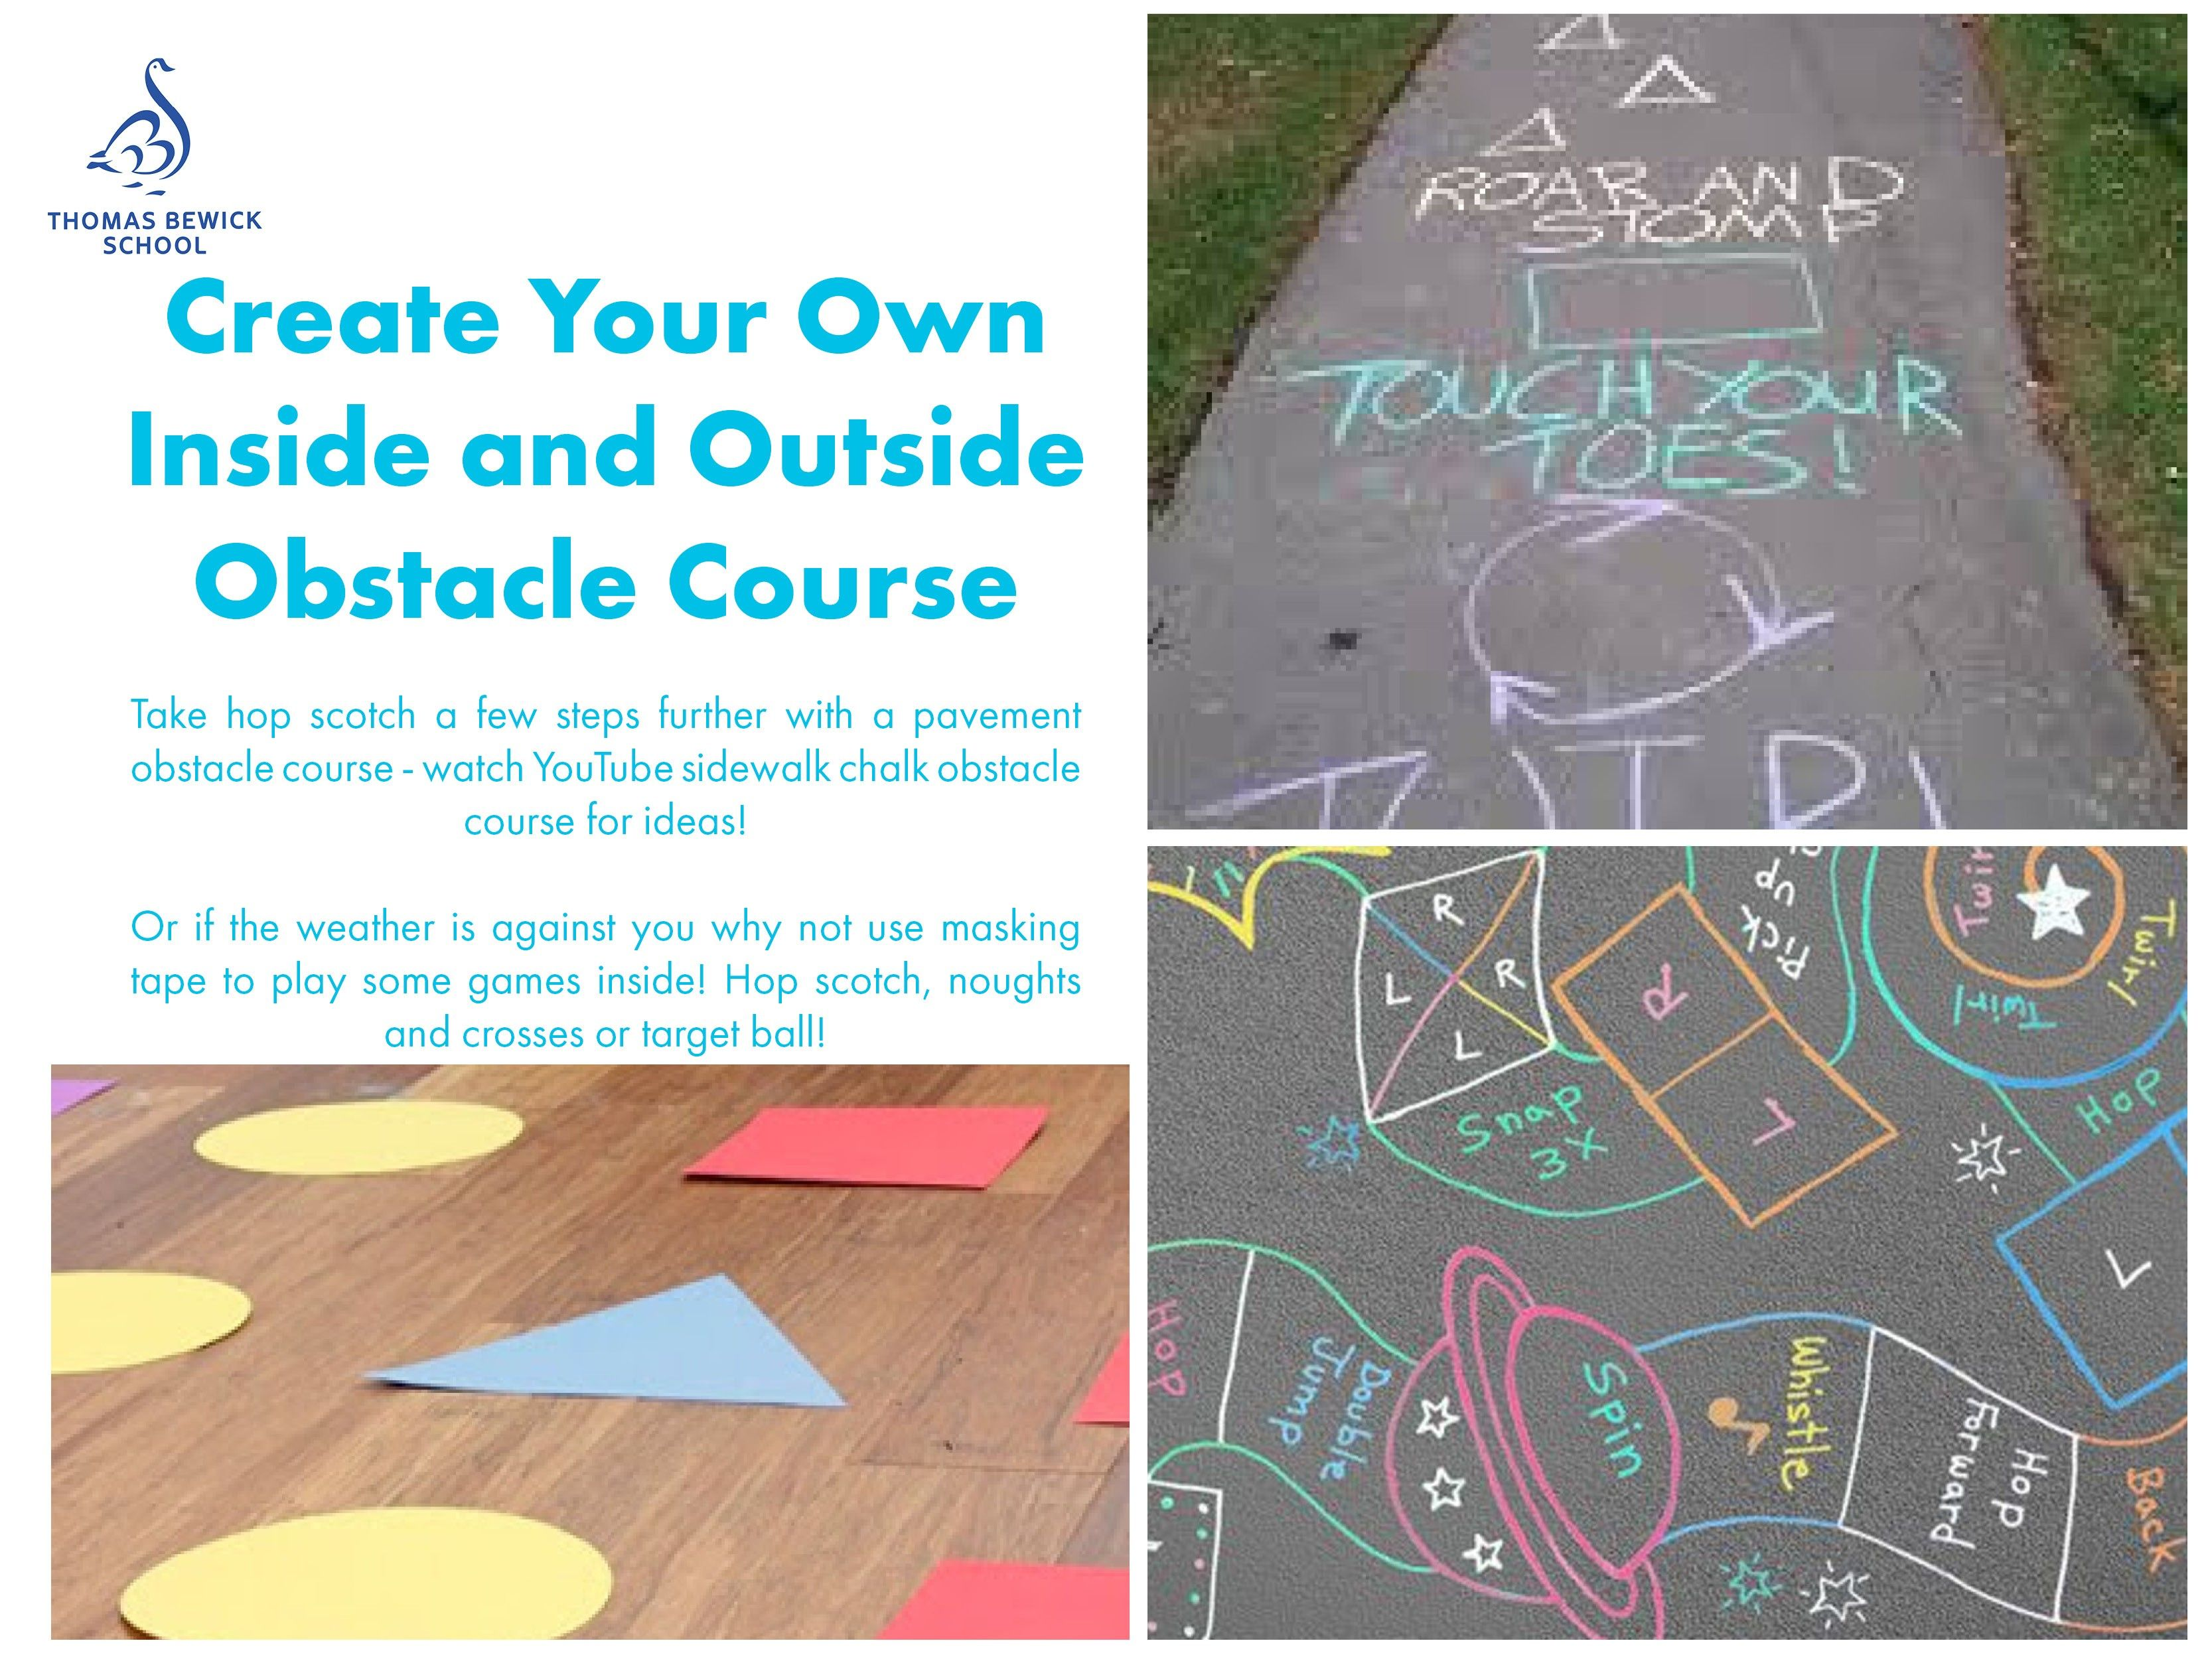 Create Your Own Inside and Outside Obstacle Course